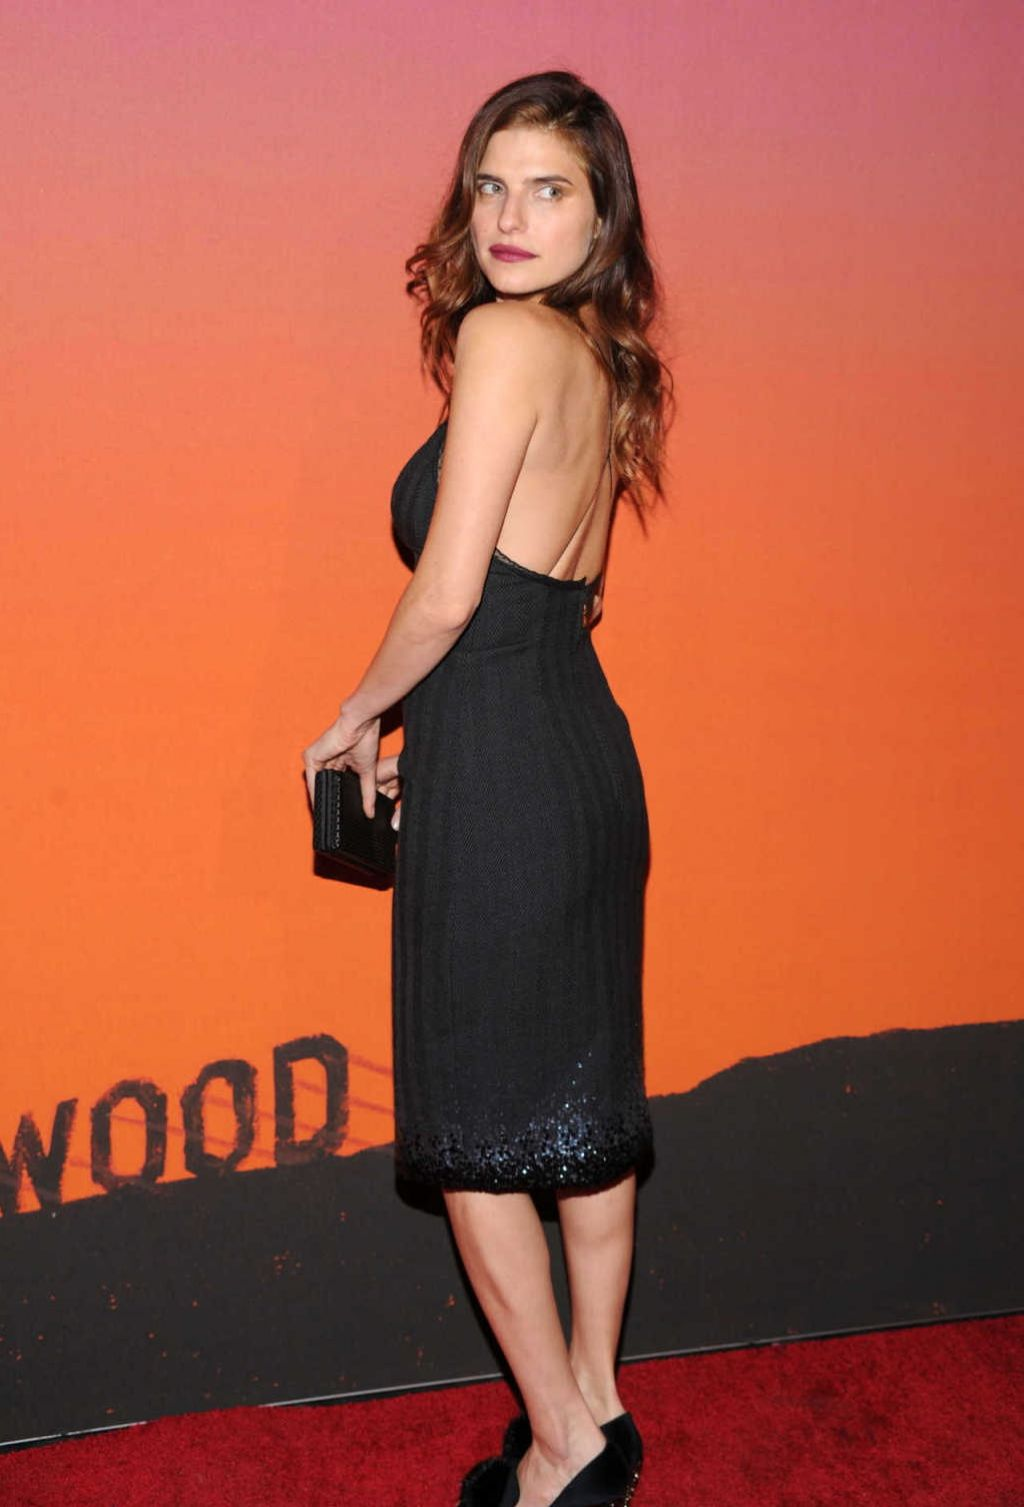 Lake Bell Red Carpet Photos - 2013 Whitney Gala And Studio Party in New York City